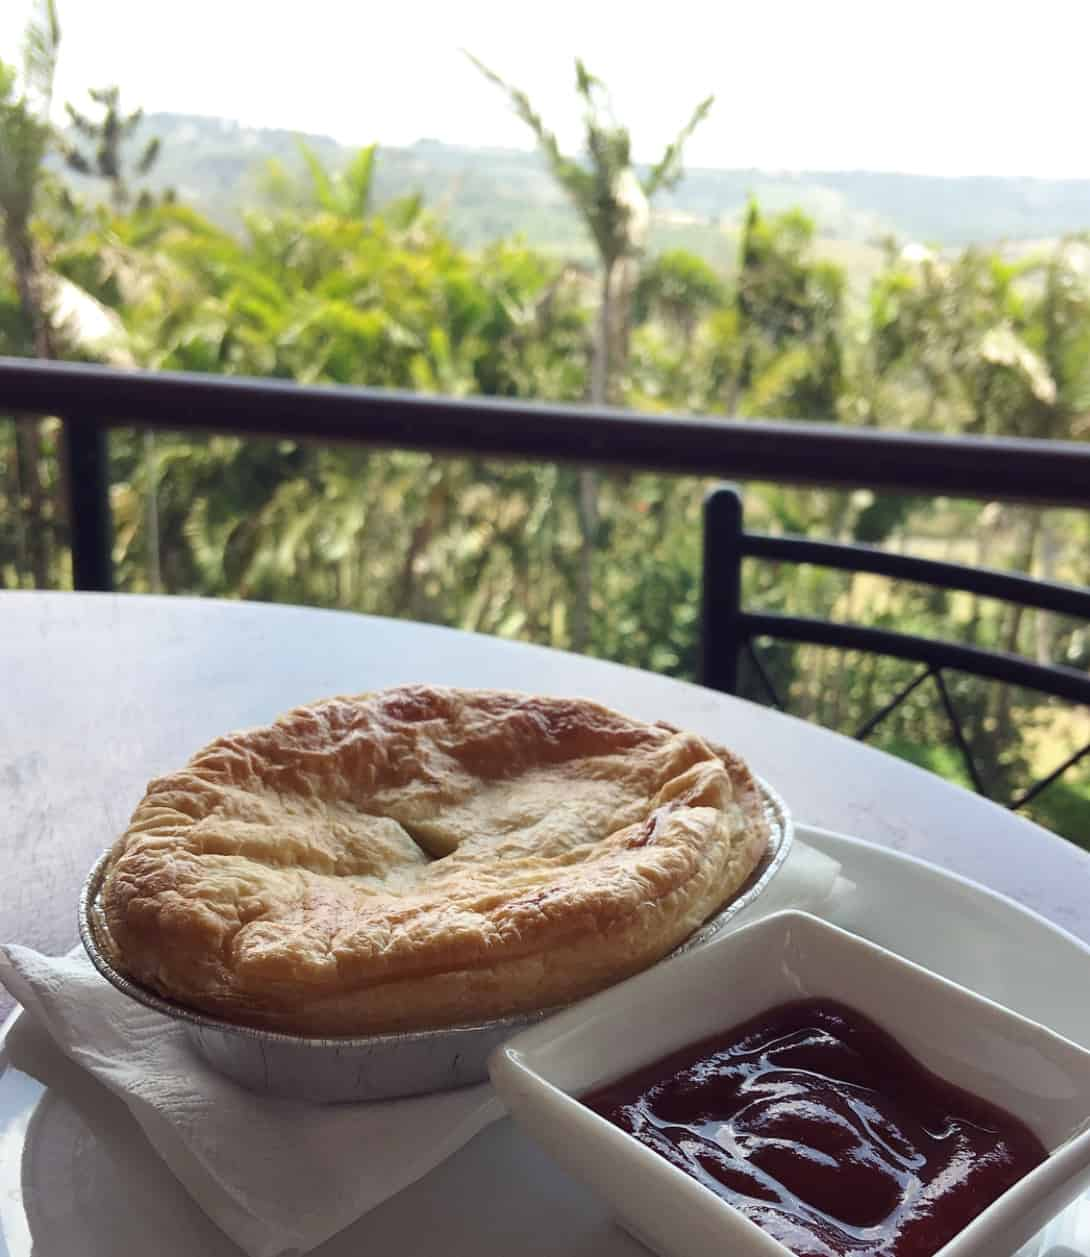 Gourmet pies are a specialty at Tommy Smith Cafe